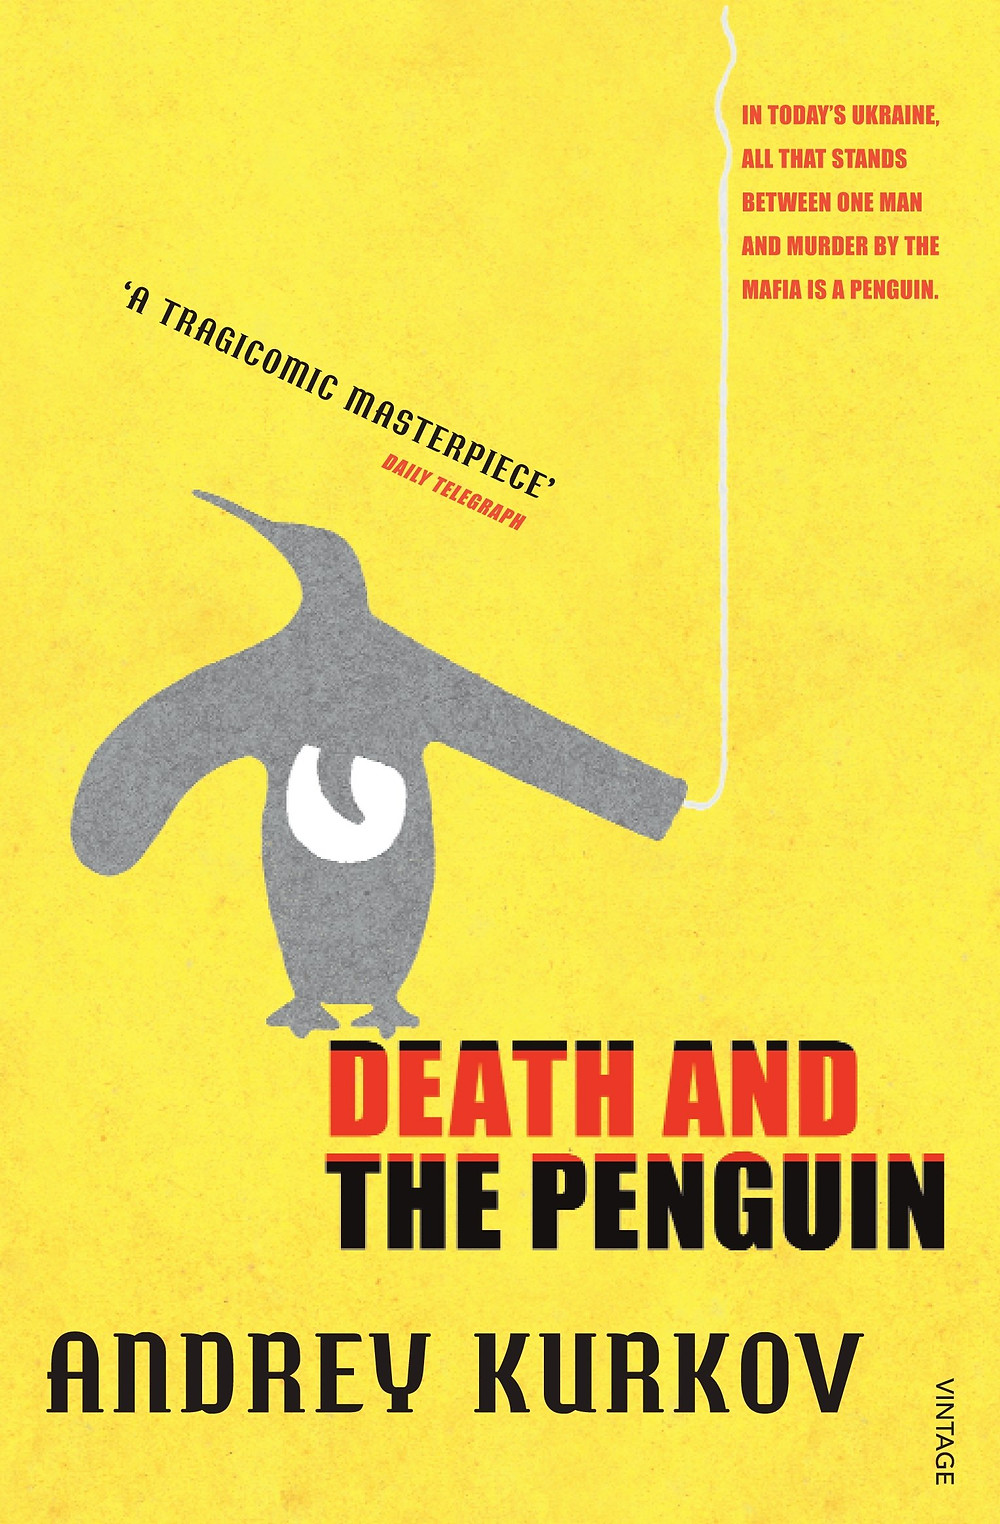 Book cover of Death and the Penguin by Andrey Kurkov.